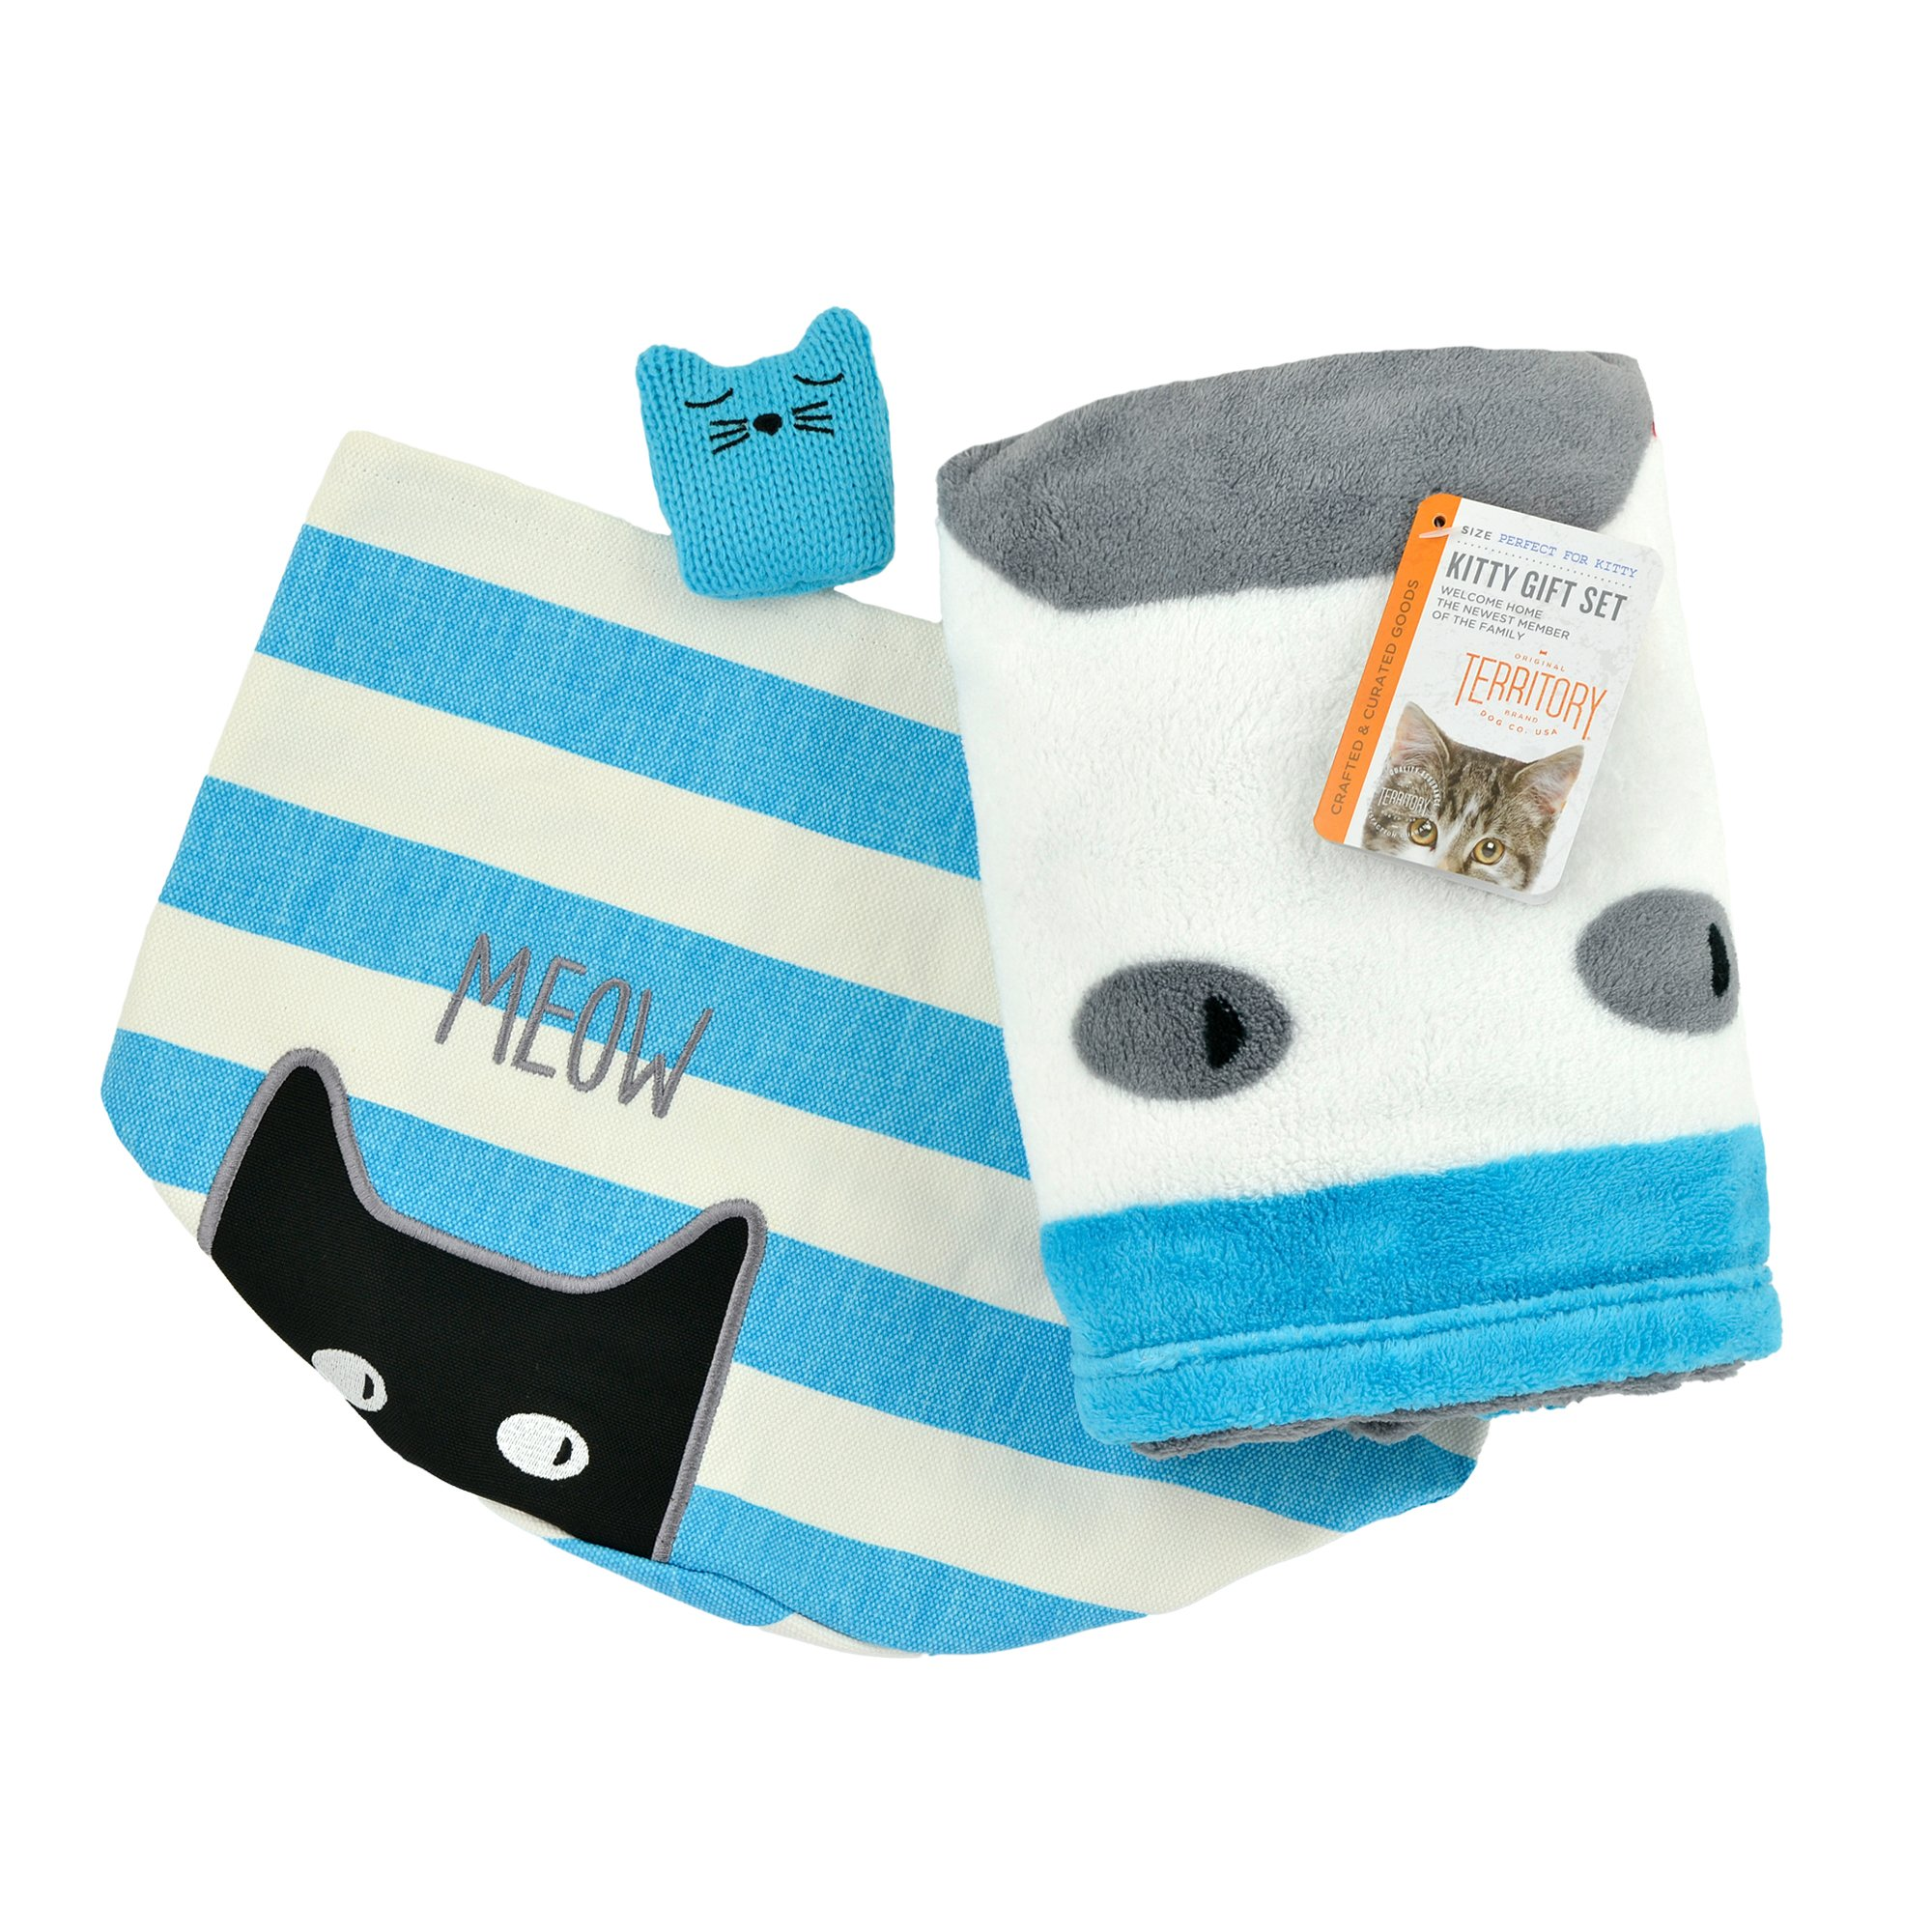 Territory Kitty Love Gift Set with Fleece Blanket Catnip Toy/Canvas Storage Bin